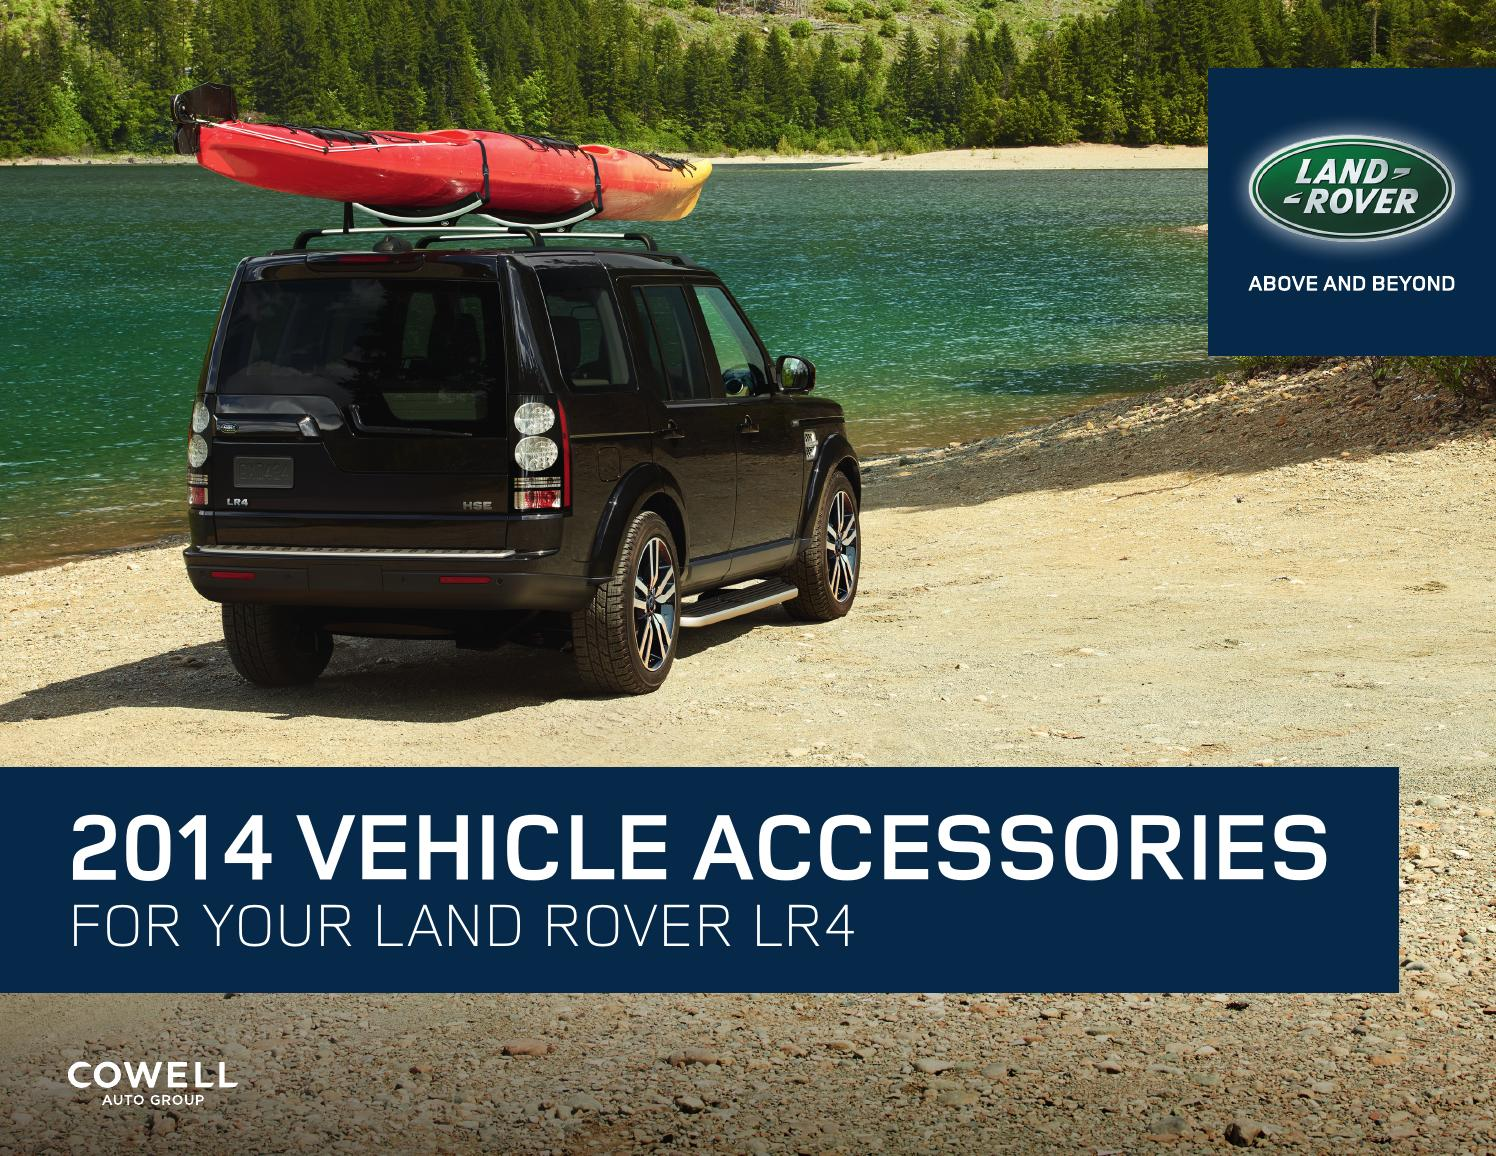 2014 Land Rover LR4 Accessories By Cowell Auto Group Issuu